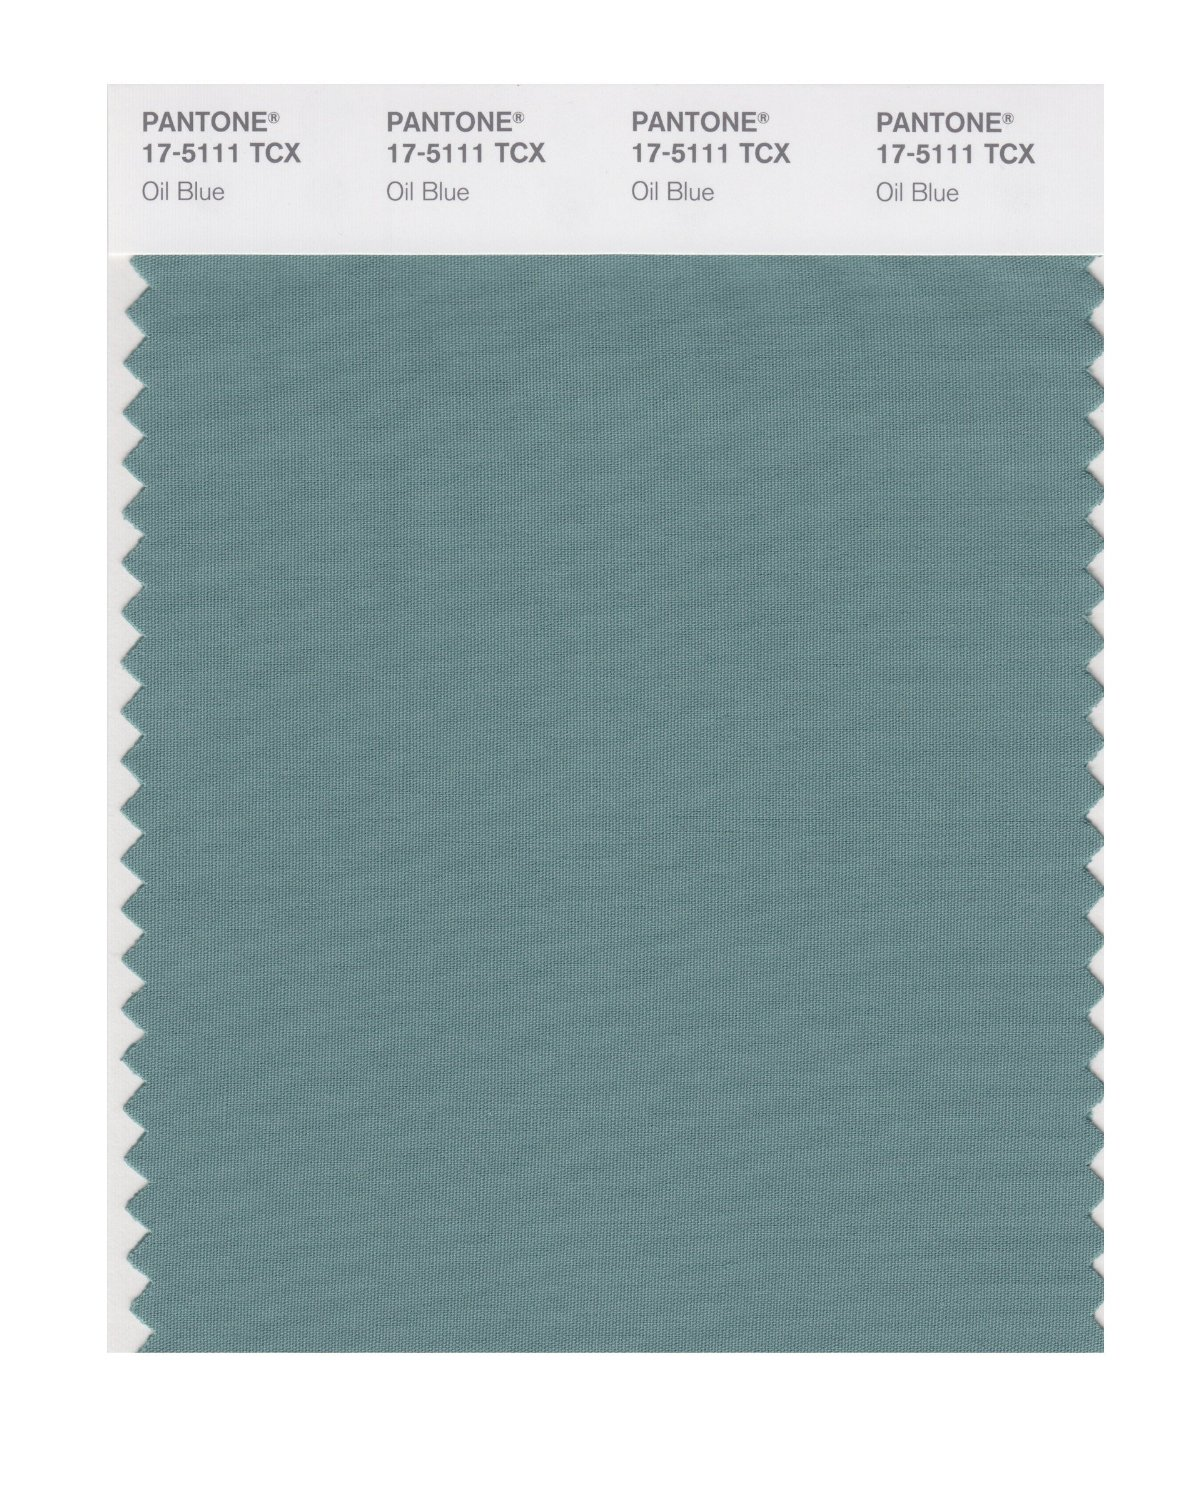 Pantone Smart Swatch 17-5111 Oil Blue